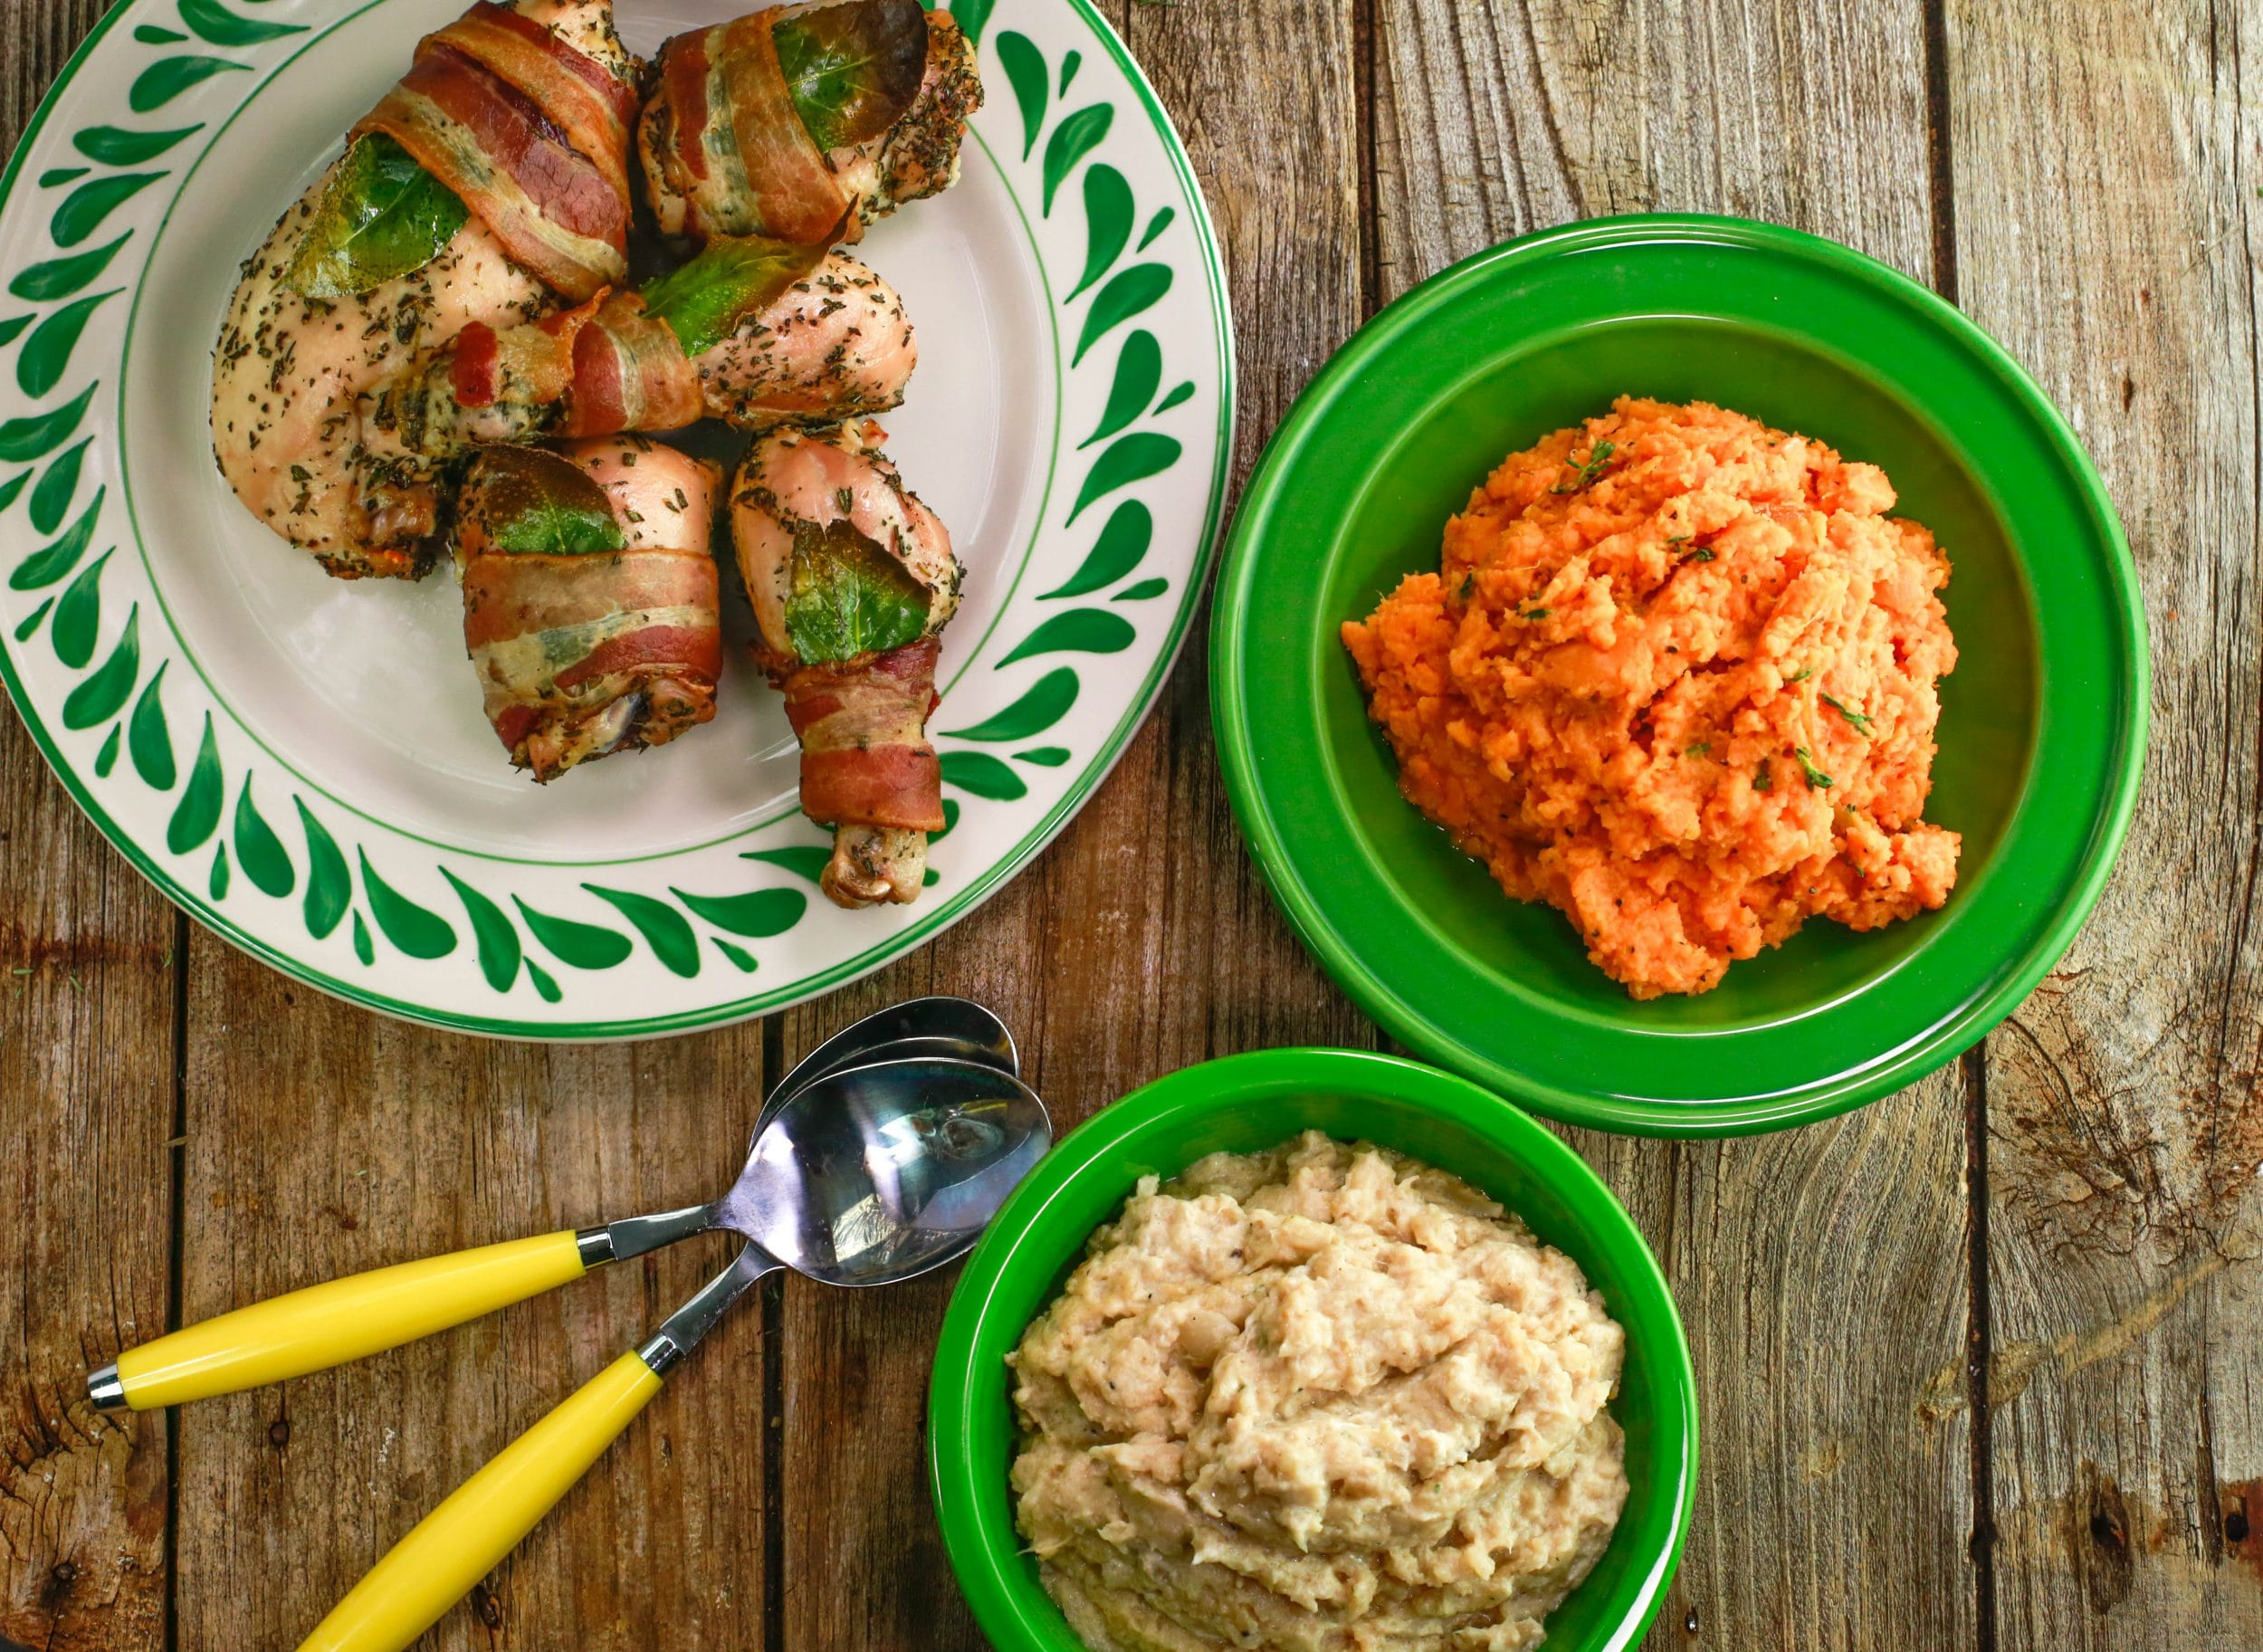 Bacon-Wrapped Chicken with Herbs